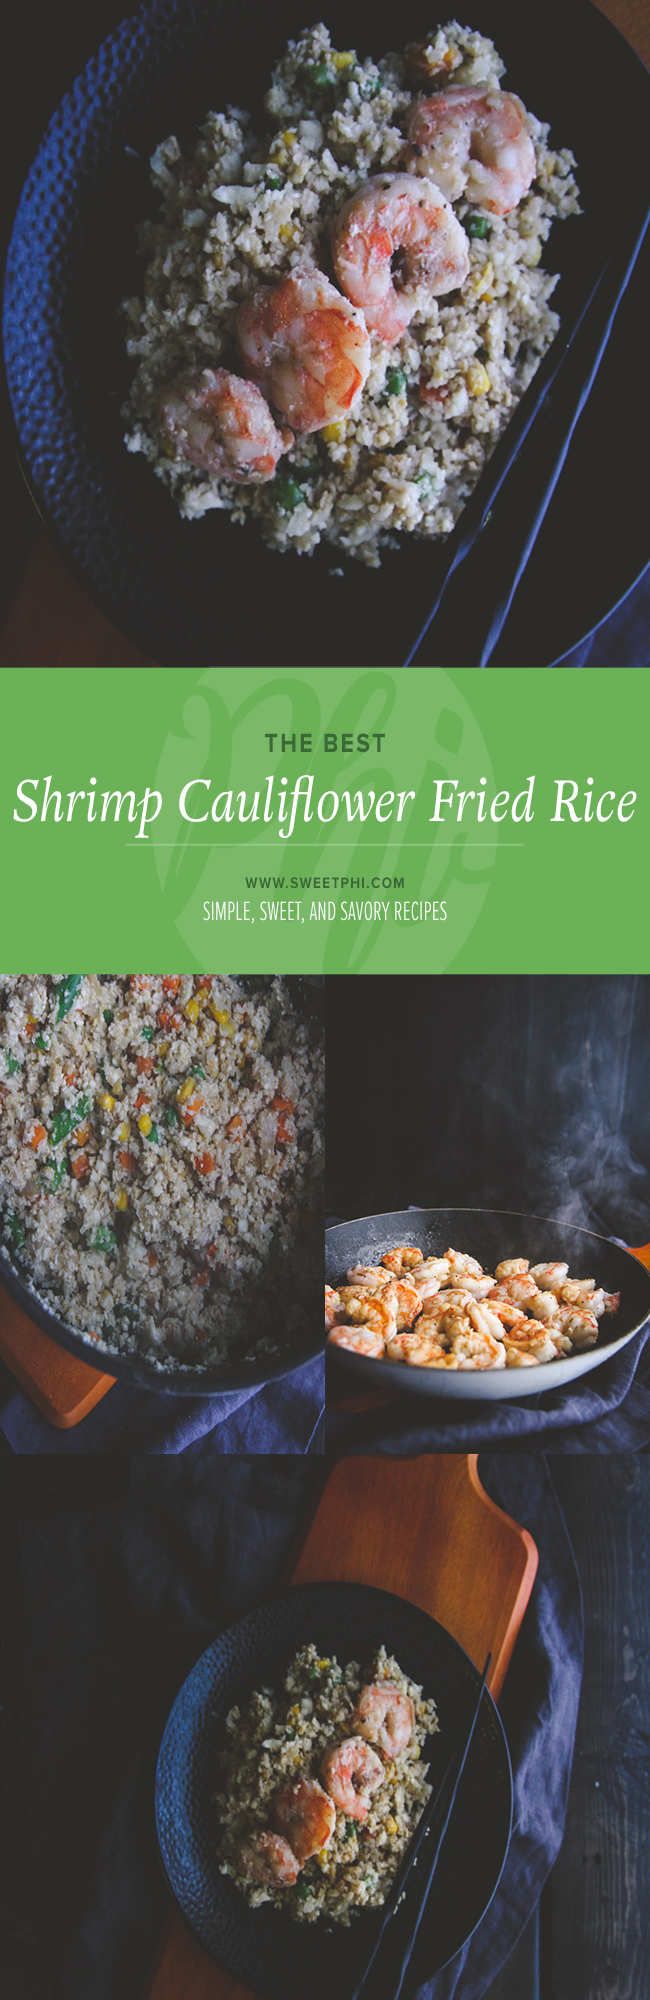 The best shrimp cauliflower fried rice from @sweetphi - perfect for a healthy 15 minute meal